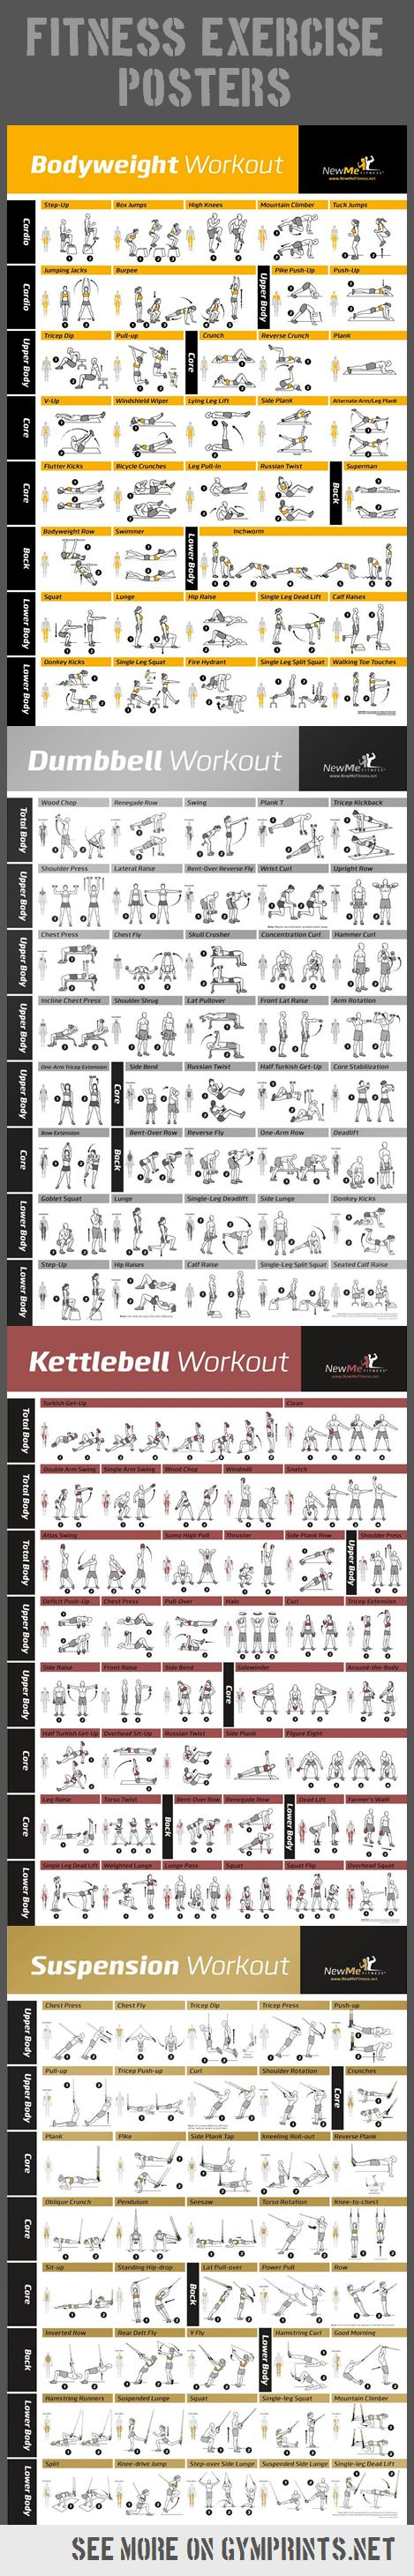 Fitness Workouts Posters